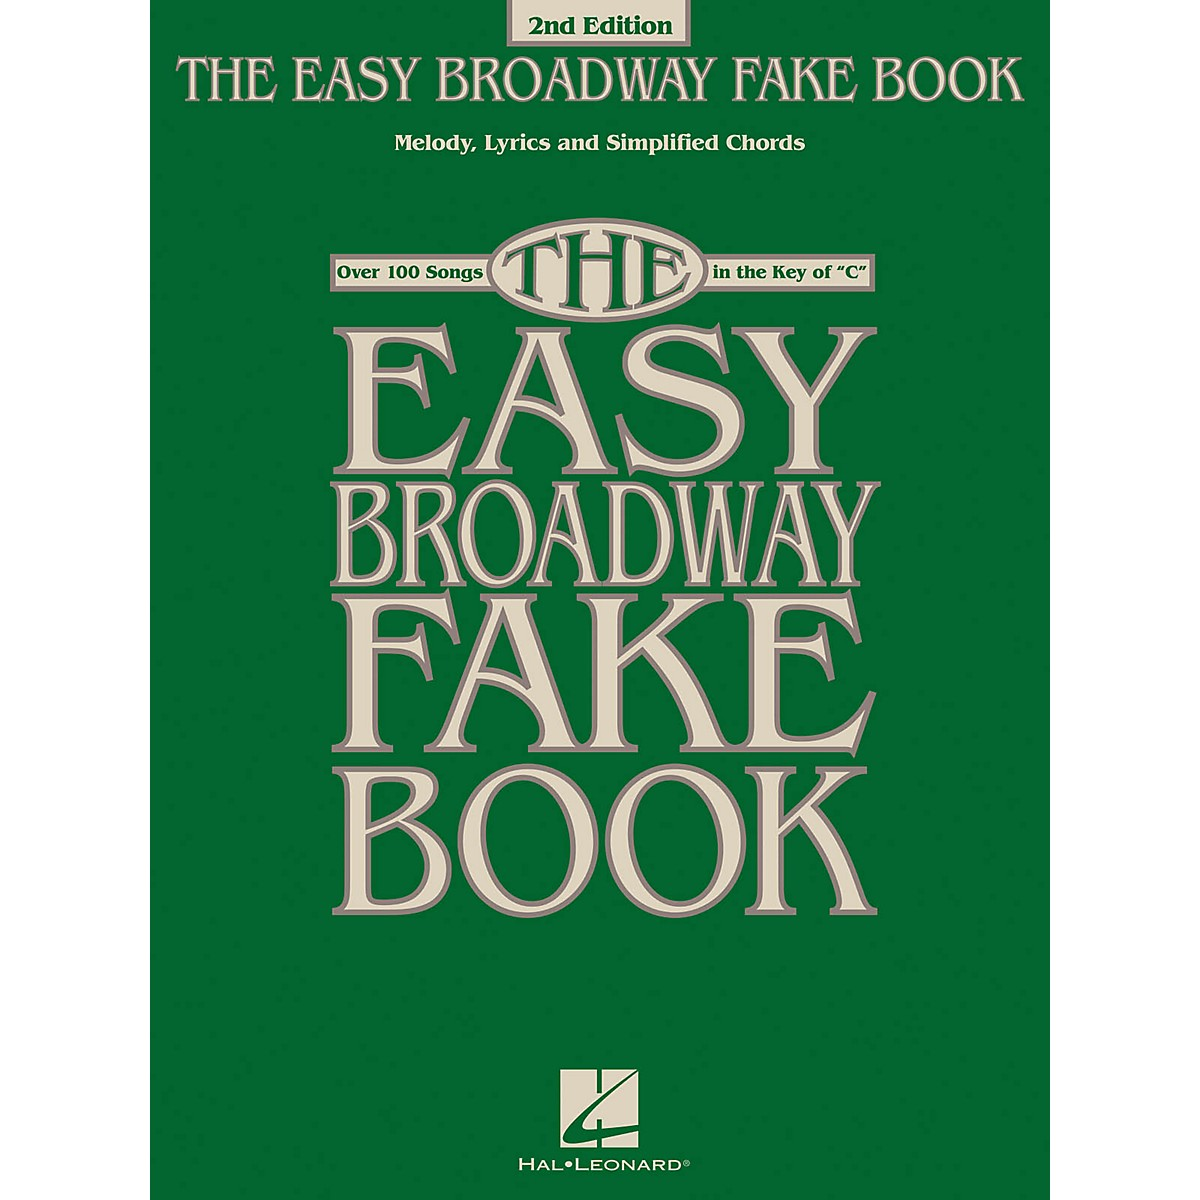 Hal Leonard The Easy Broadway Fake Book - 2nd Edition (Over 100 Songs in the Key of C)